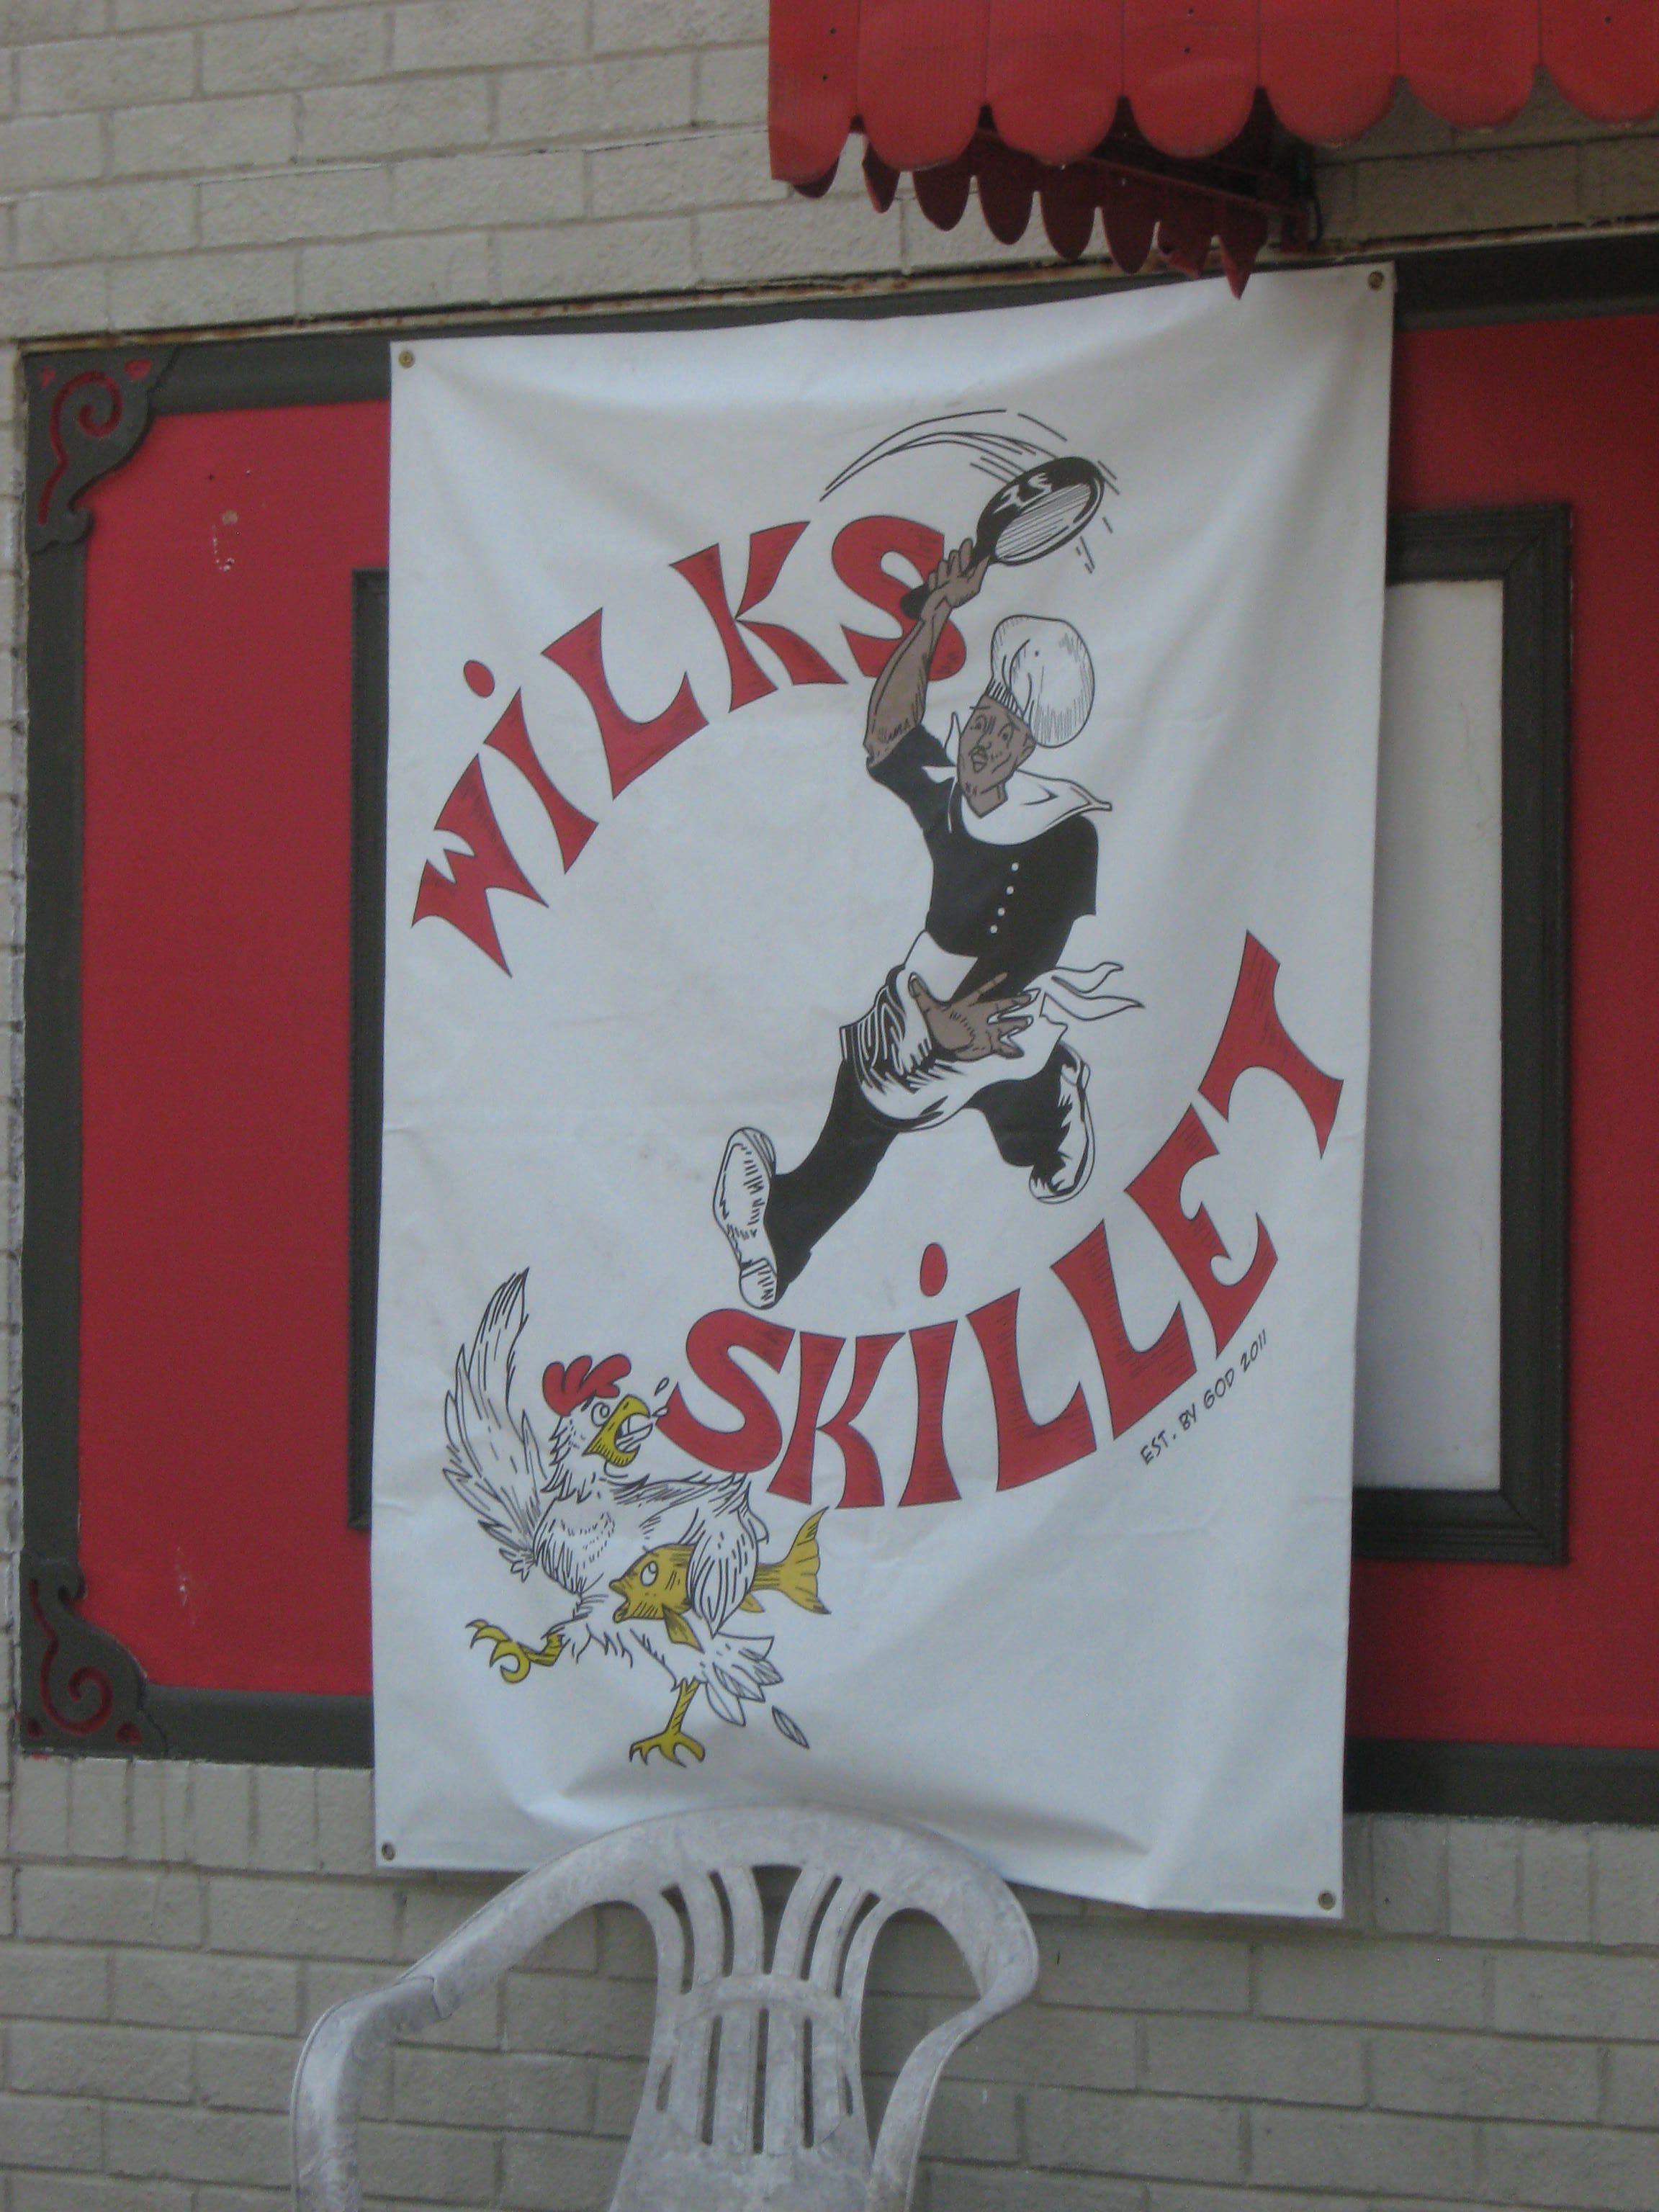 Wilks Skillet Soul Food In High Point Nc Great Food And Owners